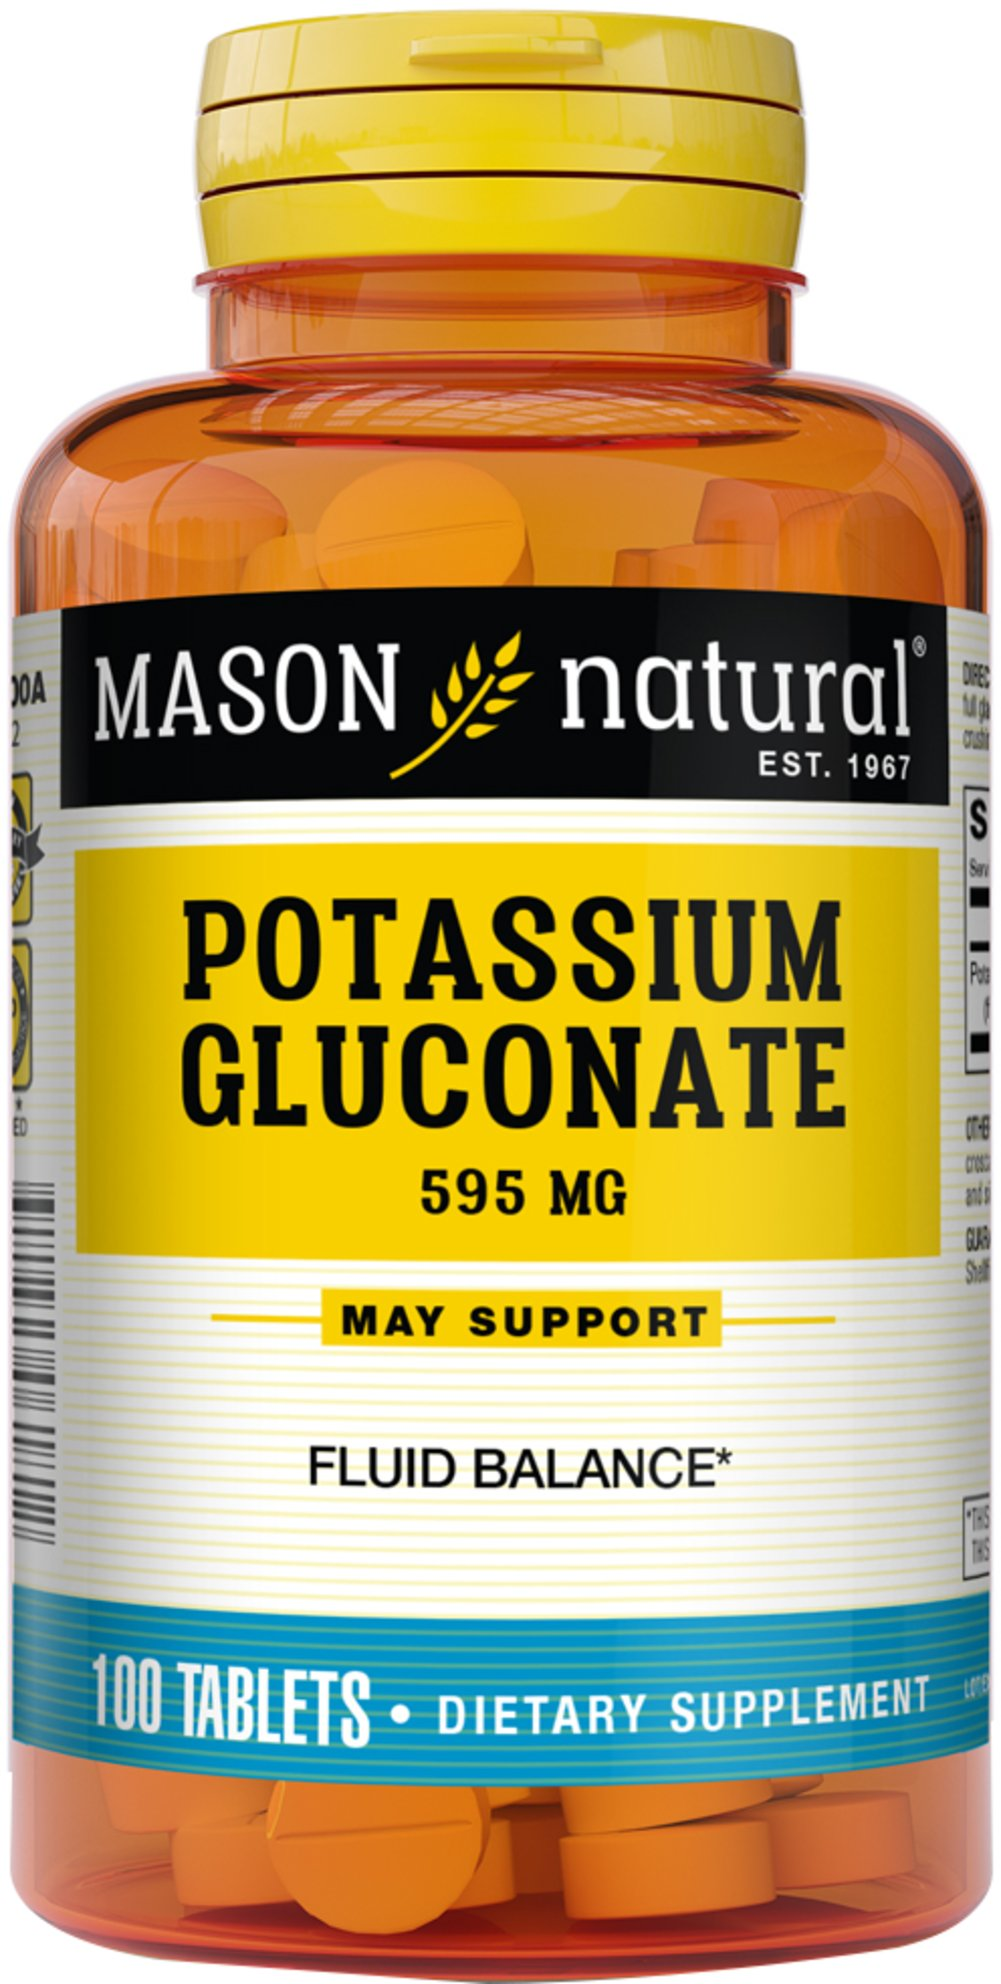 Potassium Gluconate 595 mg We are proud to bring you Potassium Gluconate 595 mg from Mason Naturals.  Look to Puritan's Pride for high quality national brands at the best possible prices. 100 Tablets 595 mg $4.49